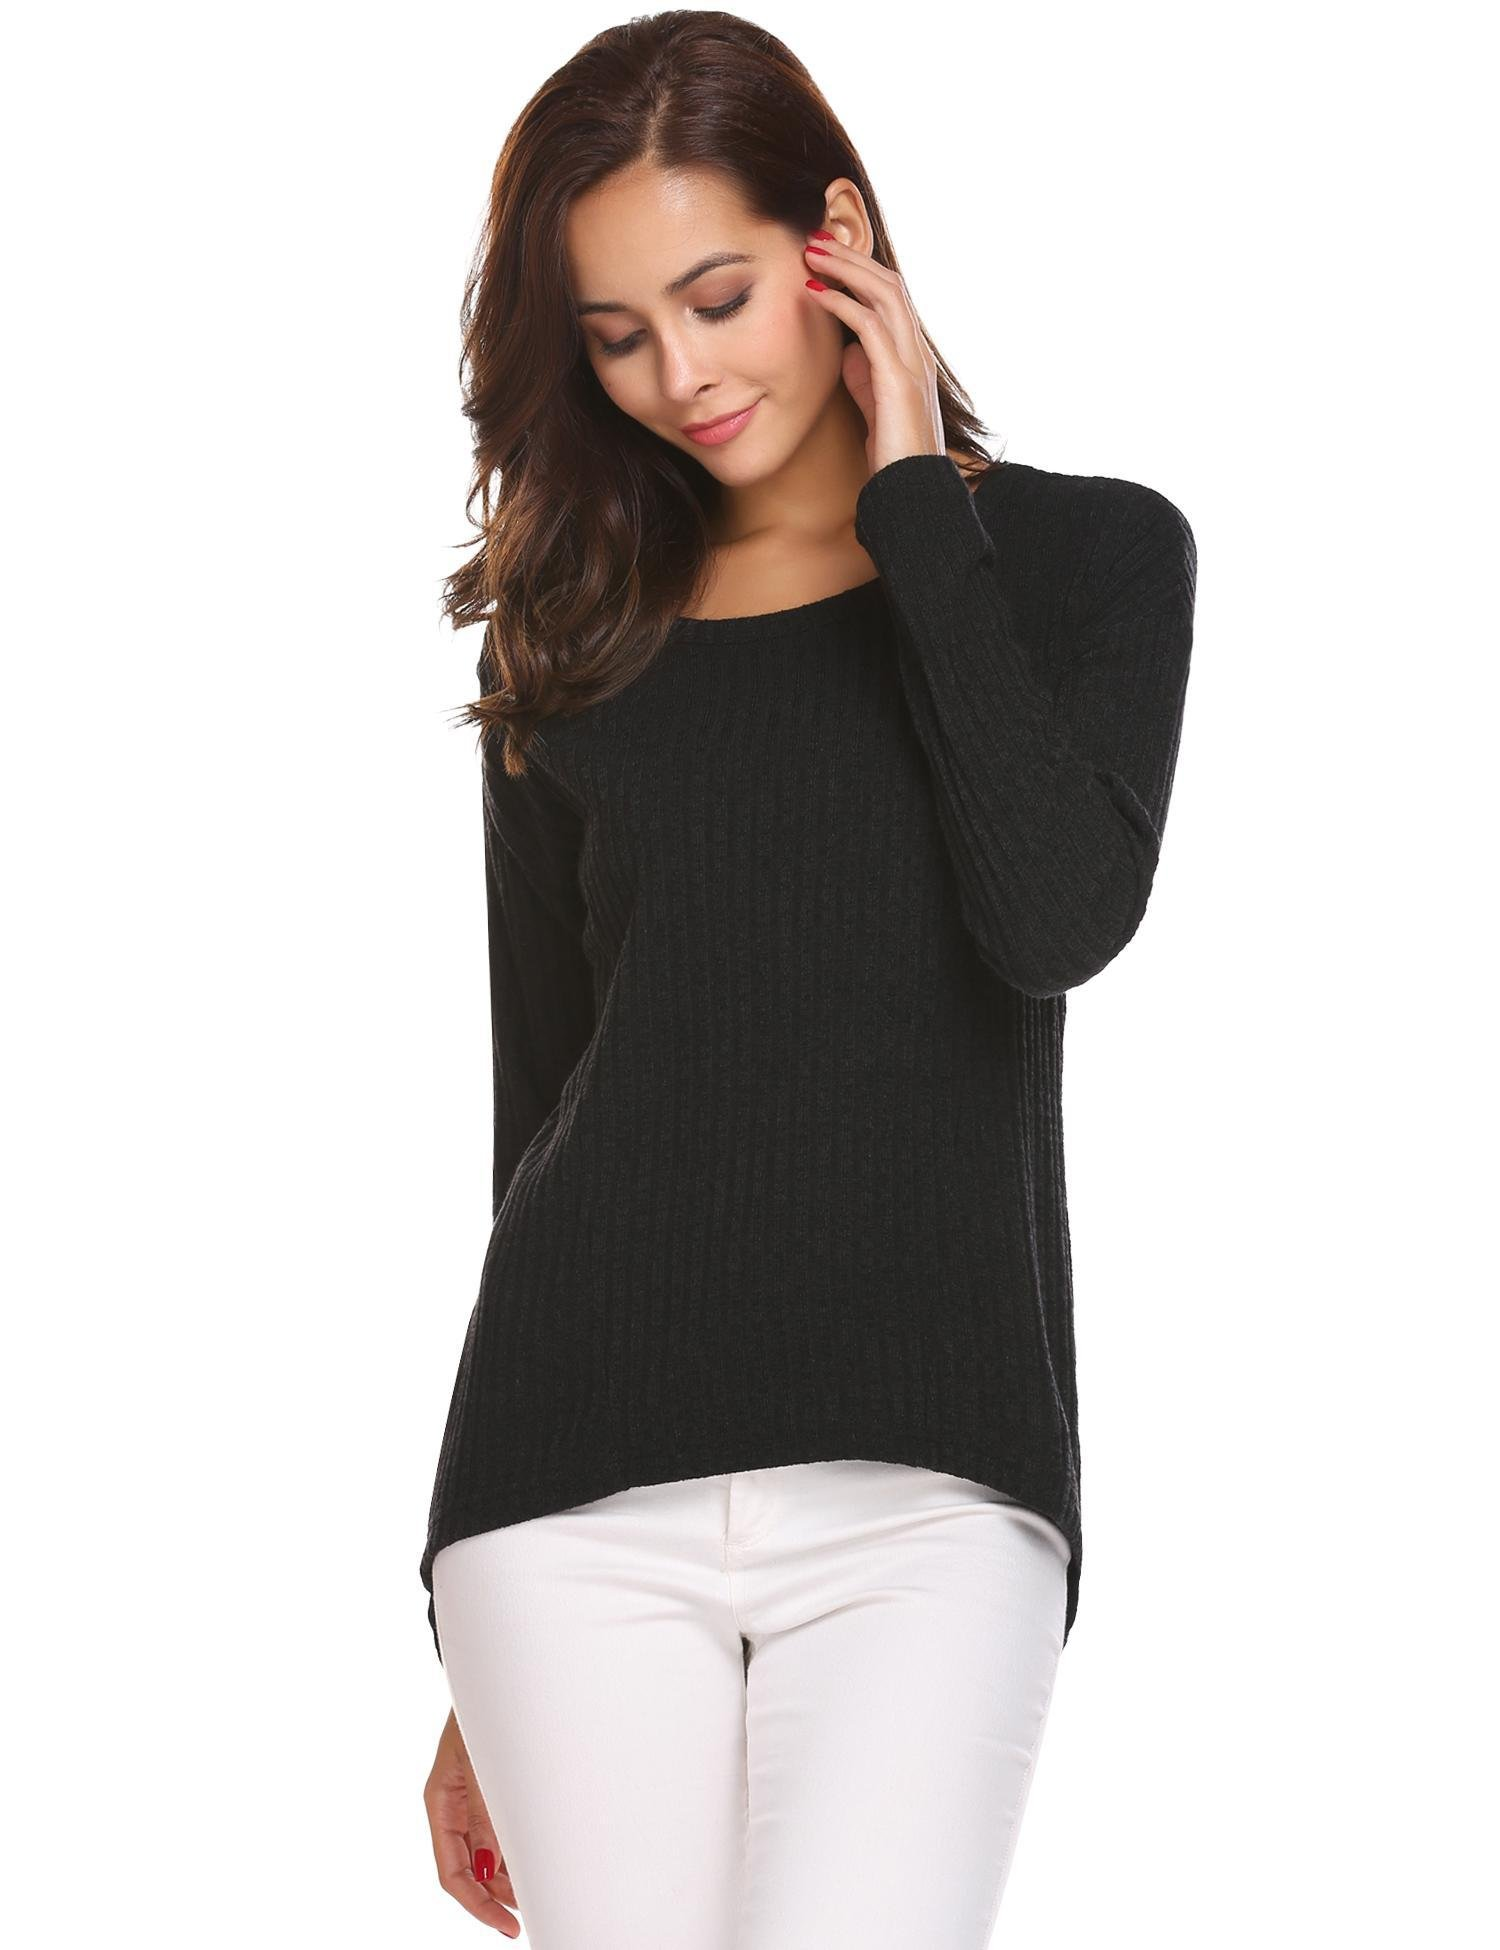 Zeagoo Womens Baggy Knitted Plain Chunky Black Pullovers Crewneck Sweater Tops 2black Medium